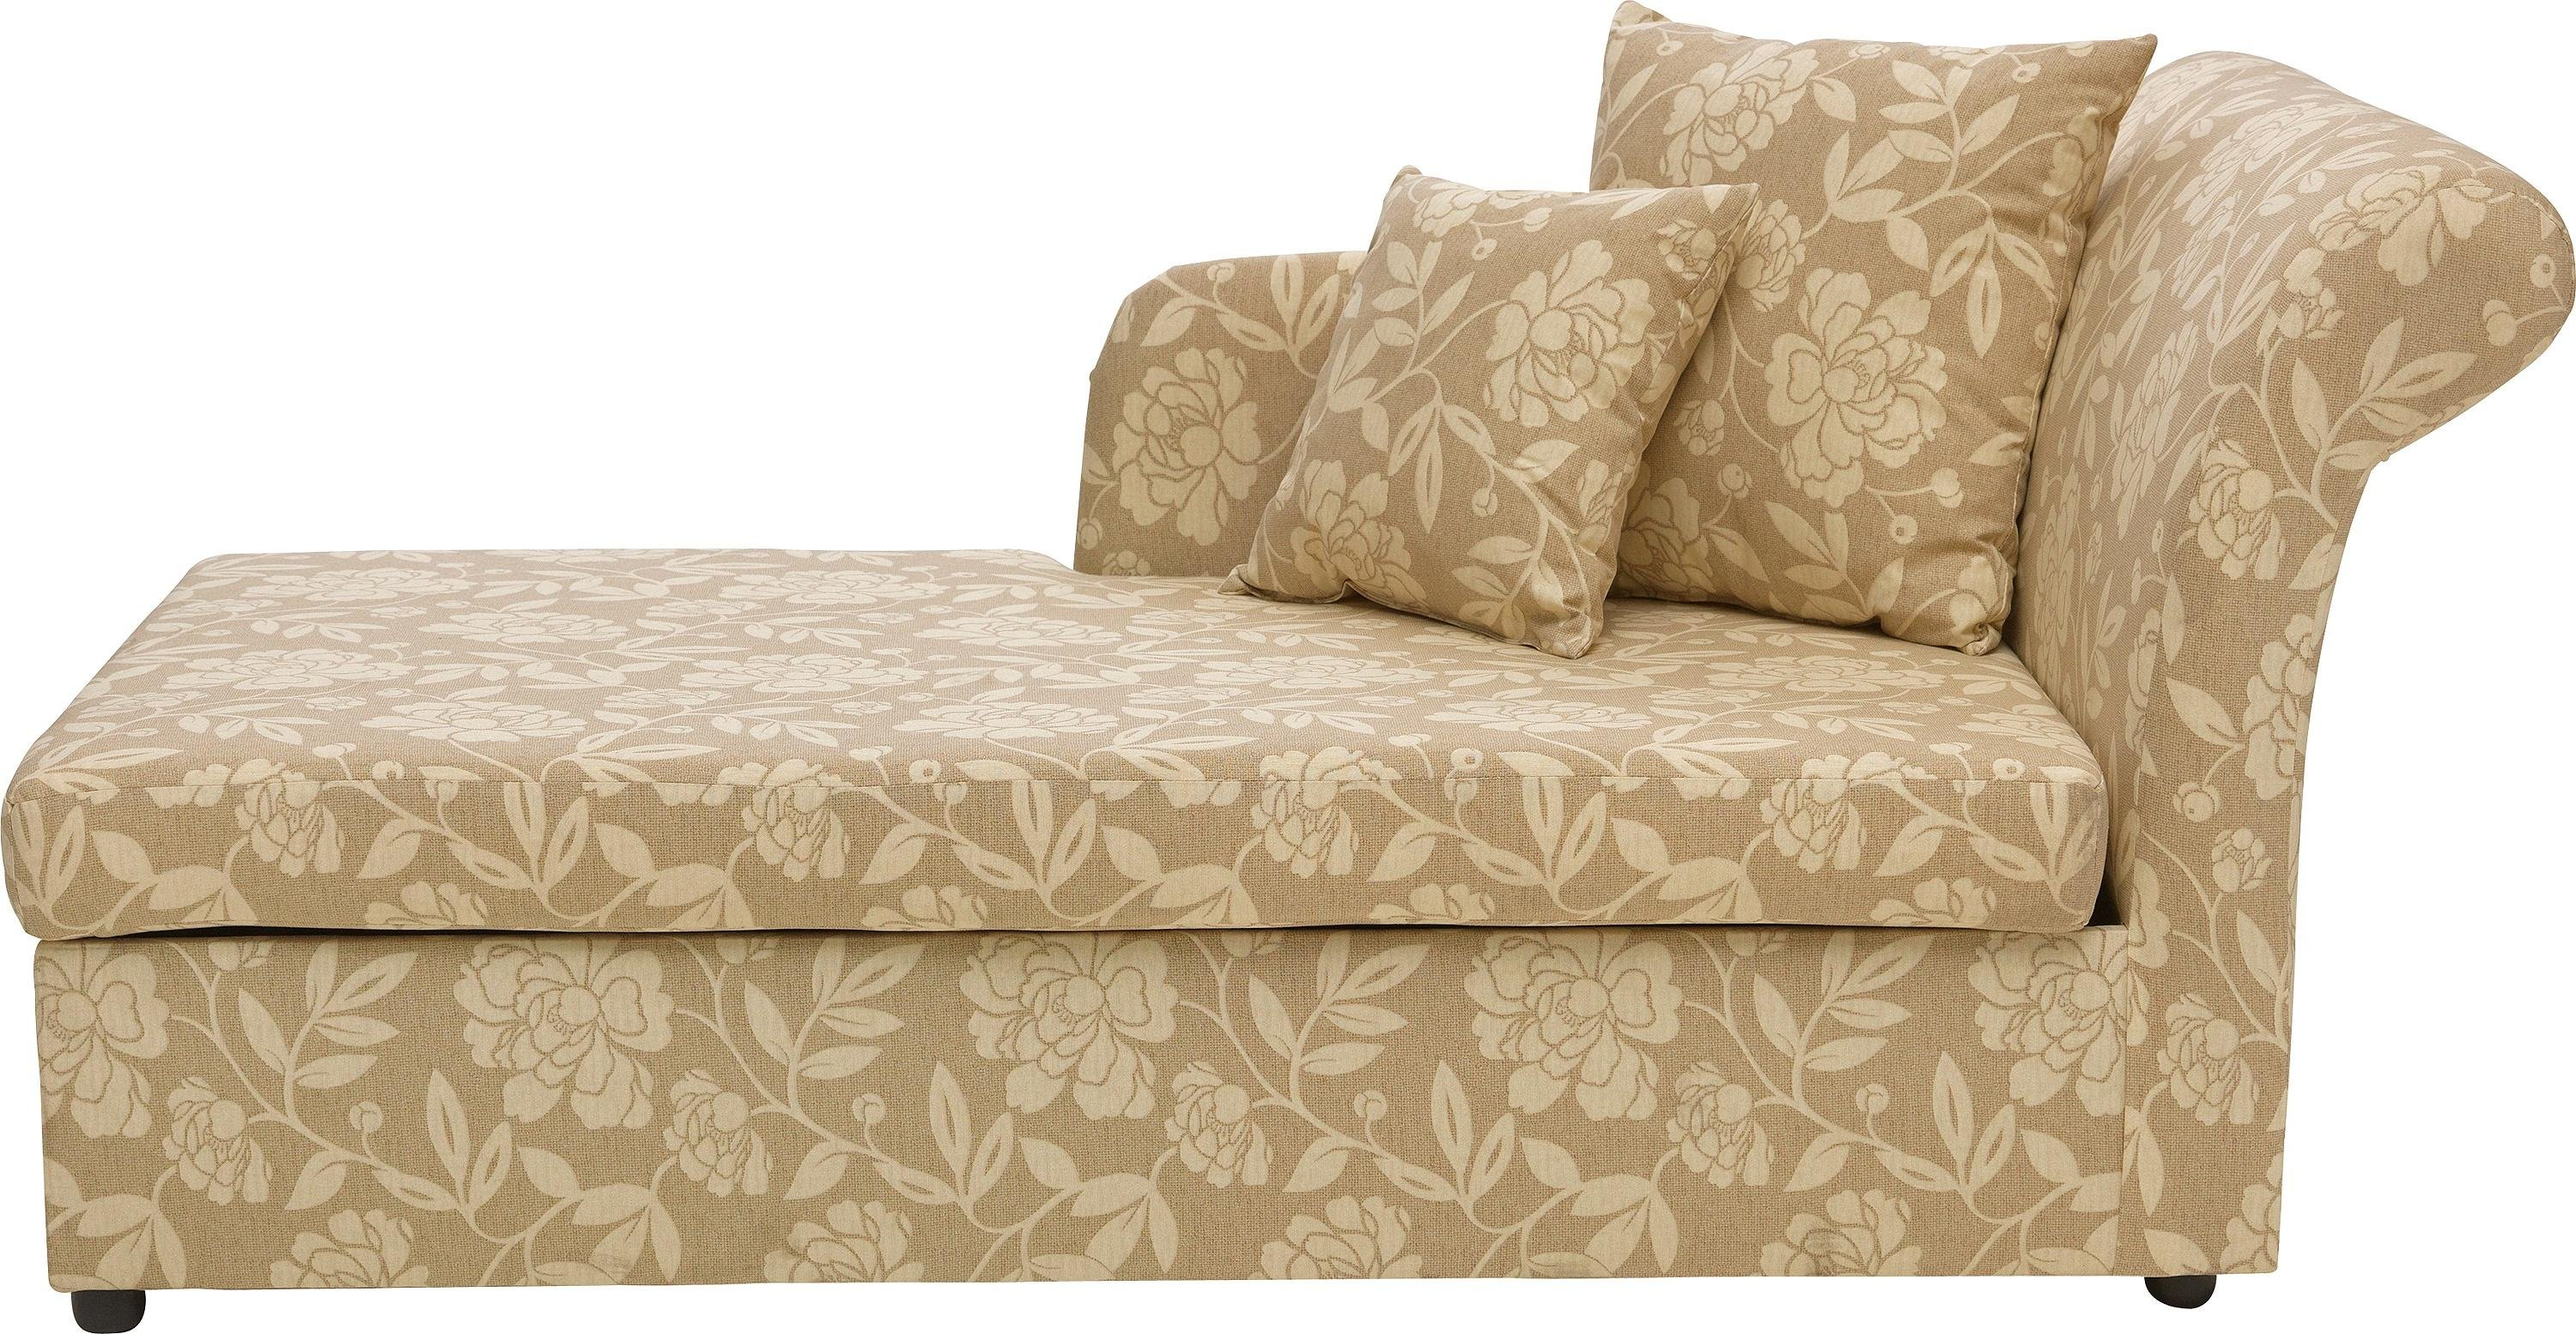 Buy Home Floral 2 Seater Fabric Chaise Longue Sofa Bed - Natural at Argos.co.uk - Your Online Shop for Sofa beds chairbeds and futons ...  sc 1 st  Argos : chaise longue sofa bed uk - Sectionals, Sofas & Couches